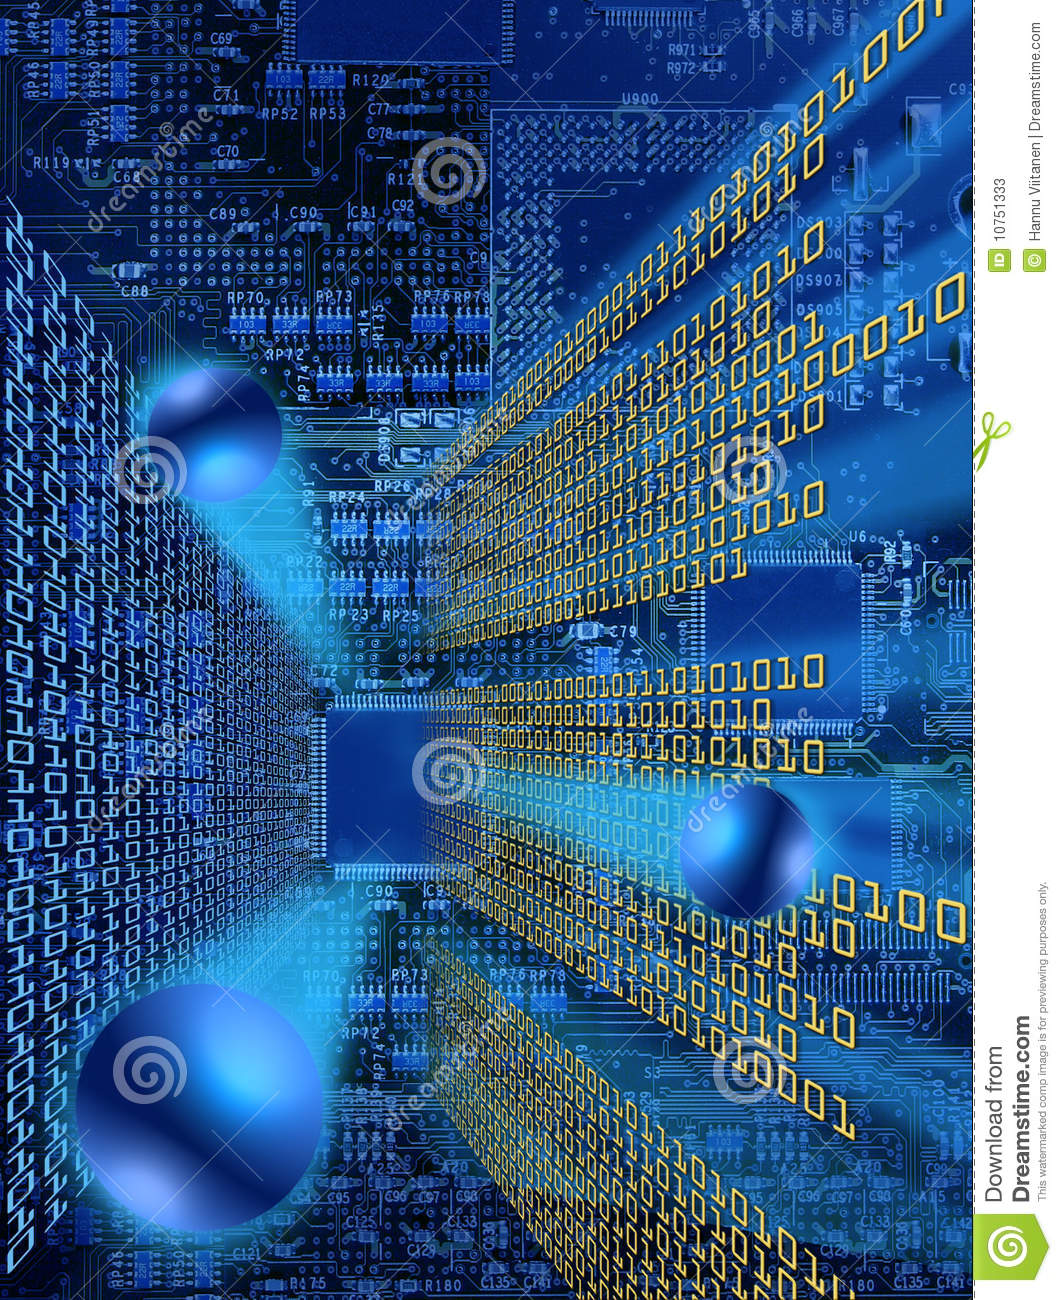 Information Explosion Stock Illustration Of Background Or Photo Computer Electronic Circuit Cpu Board Breaking Binary Code Bursting From Processors In